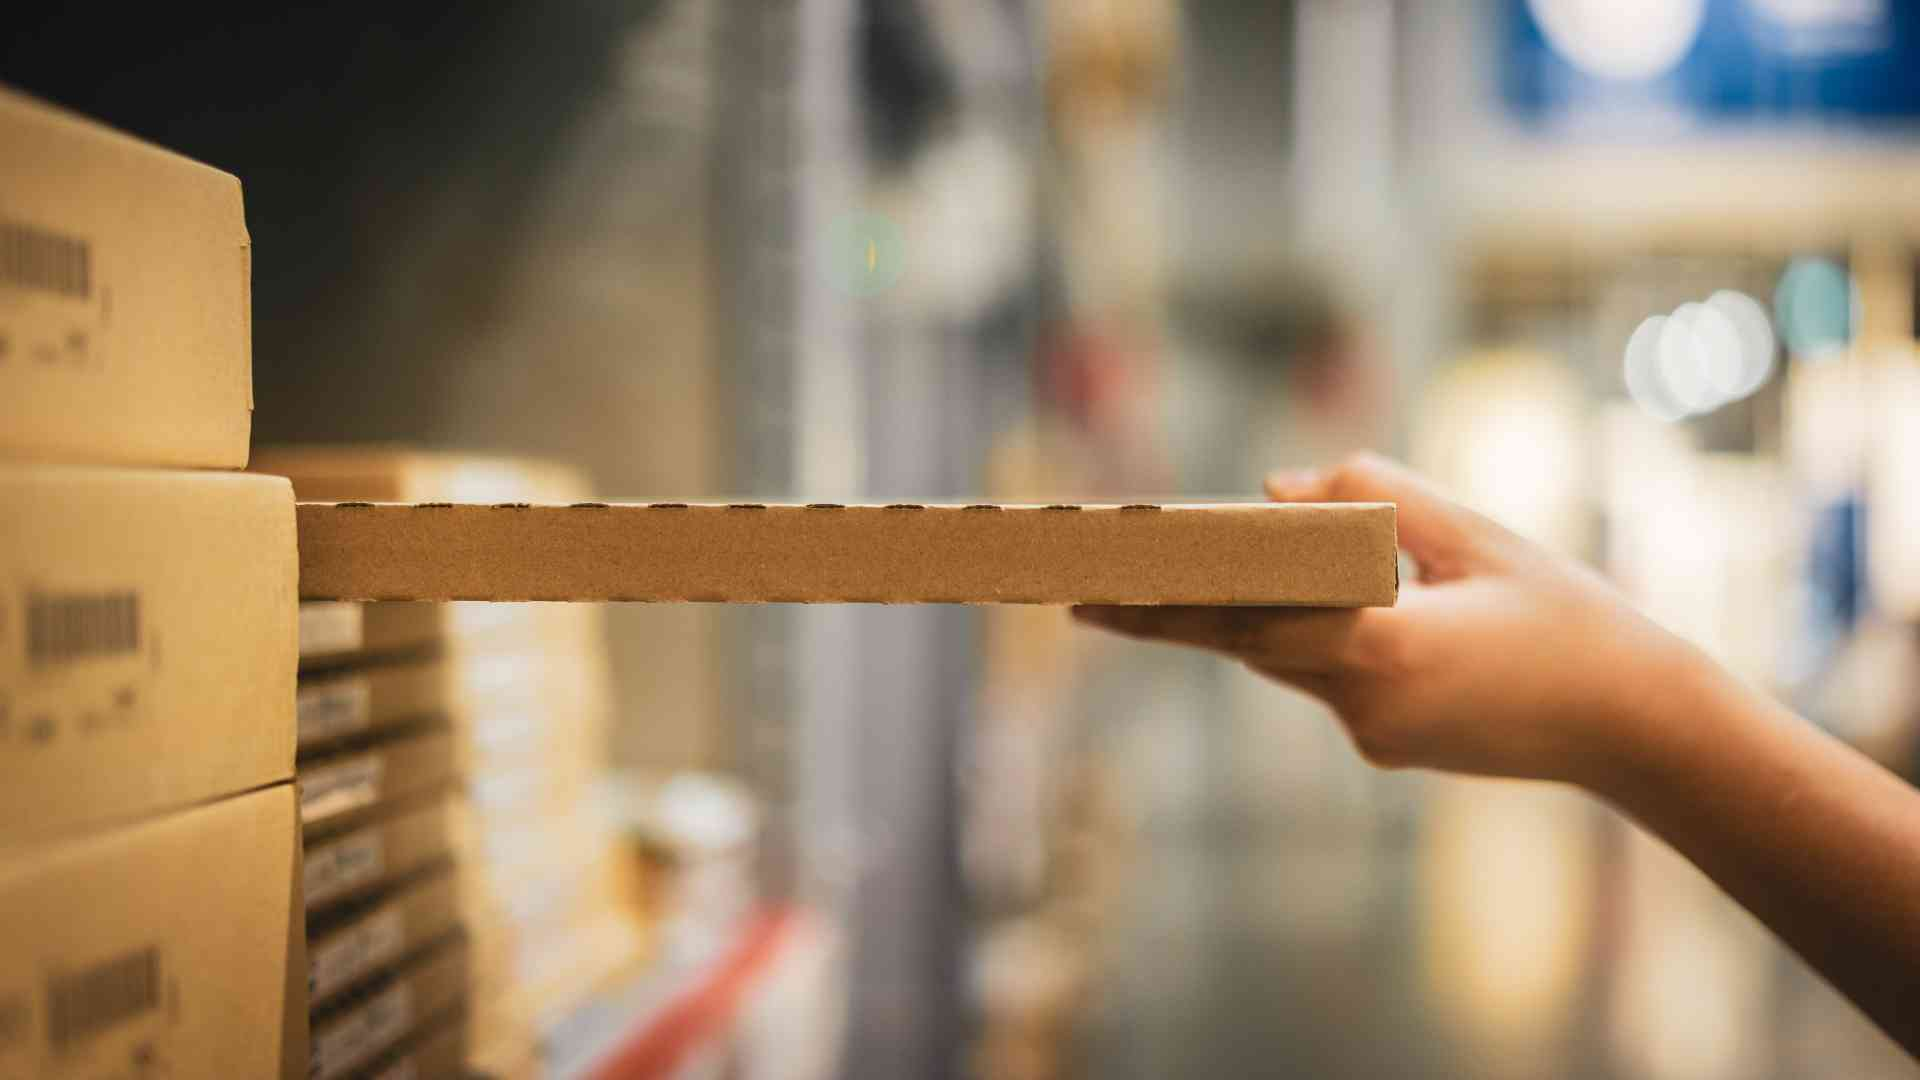 Woman Picking Product From Shelf Warehouse Inventory